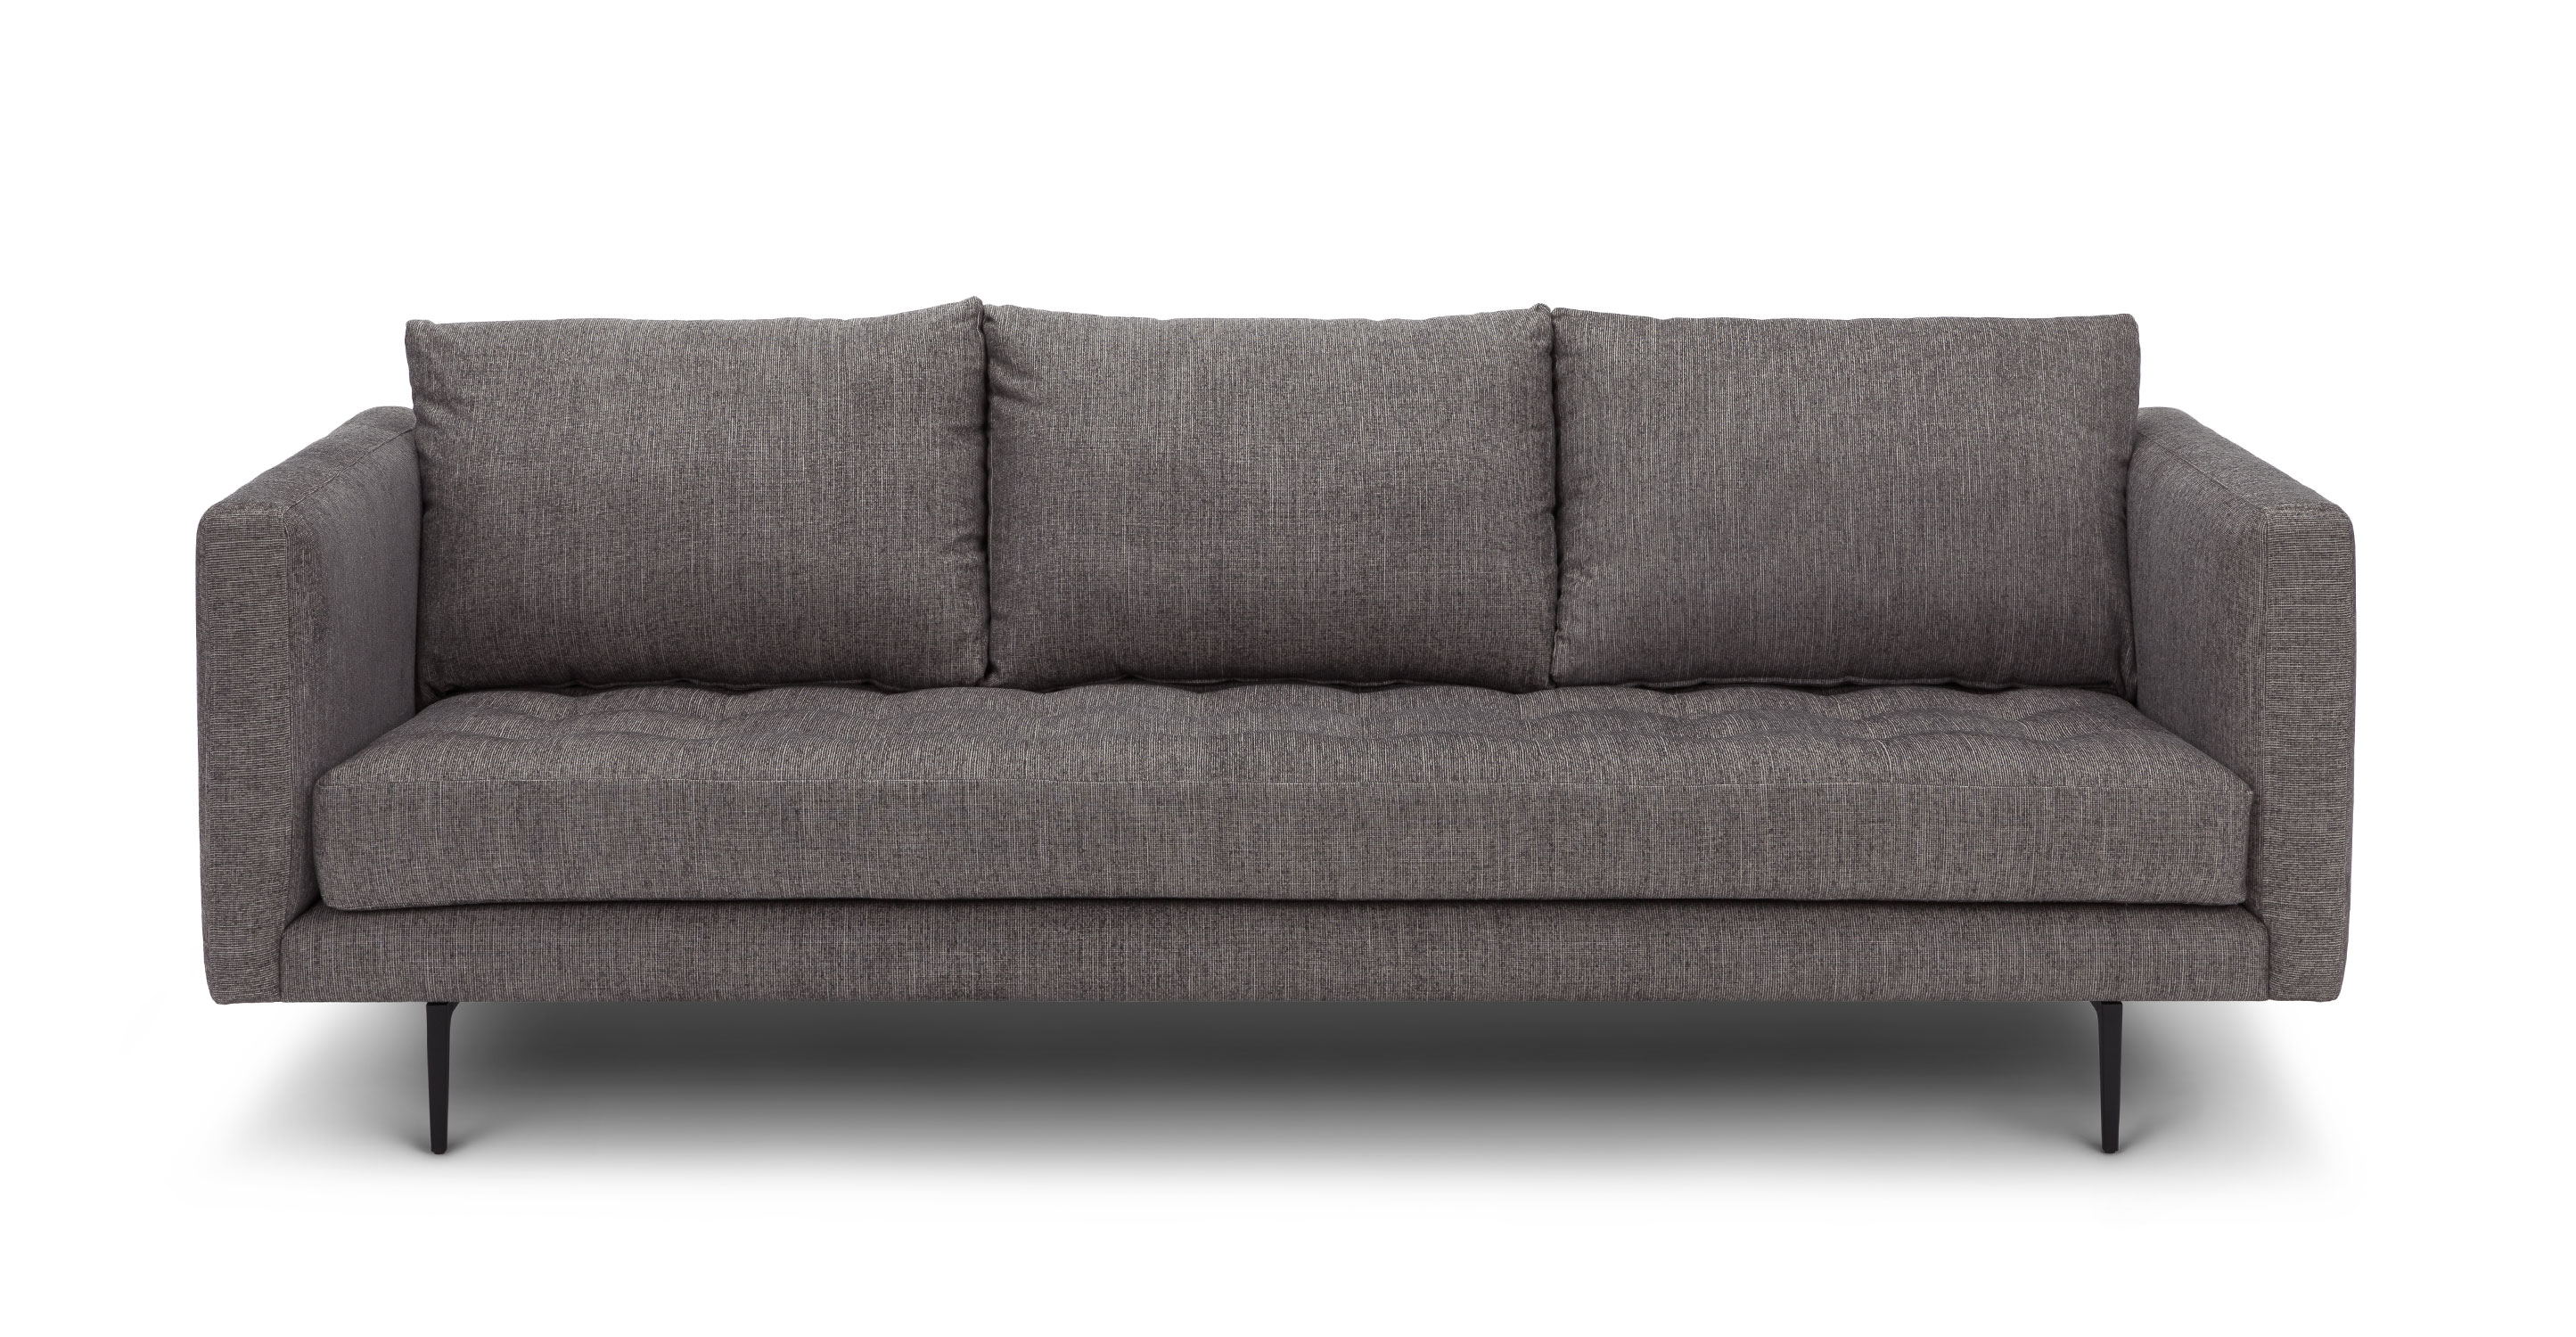 parker sofa and loveseat comfortable sofas for sale article home the honoroak